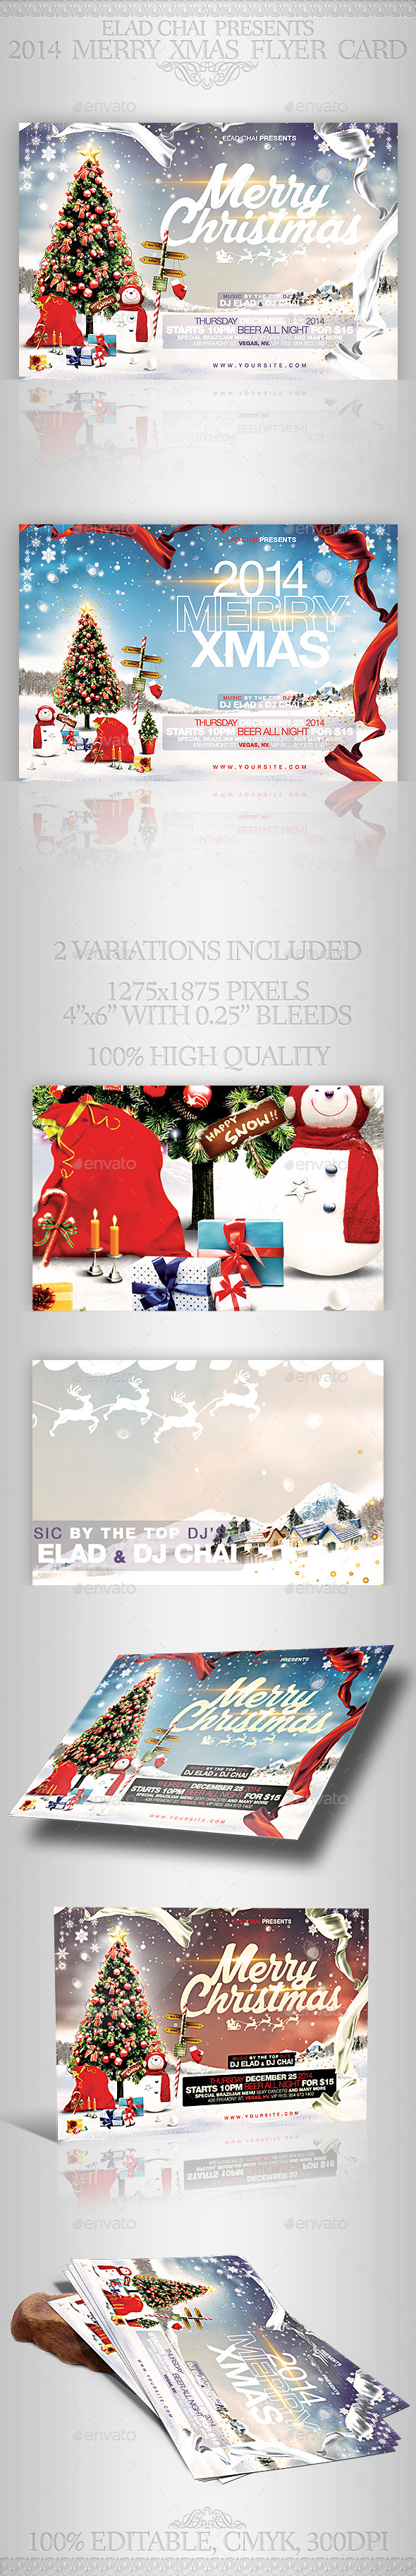 GraphicRiver 2014 Christmas Flyer Card Template 9447056